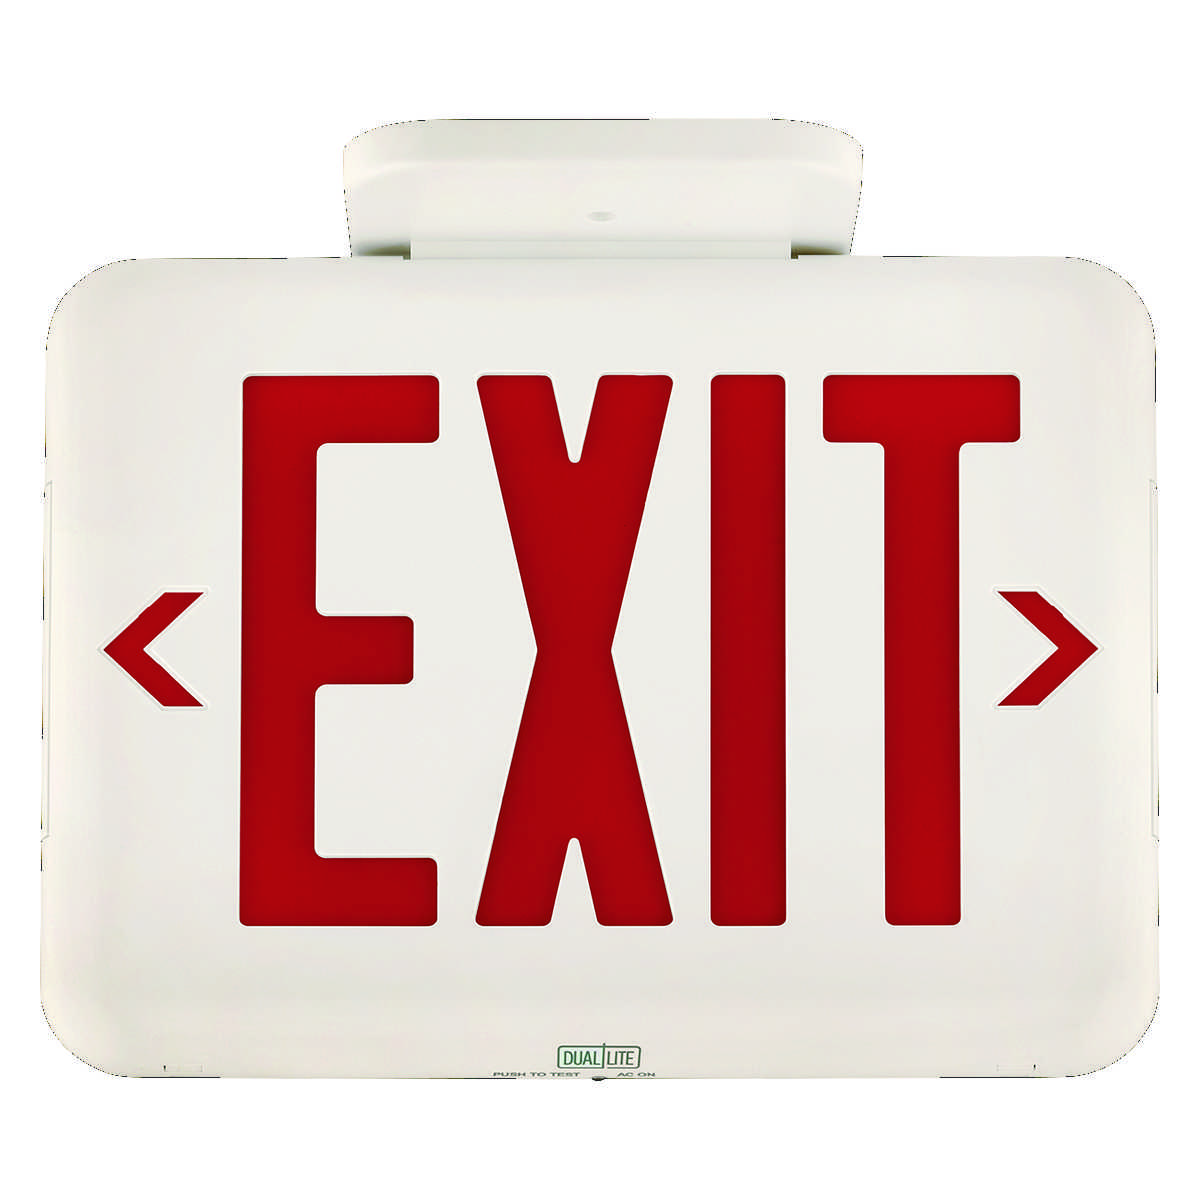 DUAL EVEURWE LED UNIVERSAL FACE EXIT SIGN, RED LETTERS, WHITE